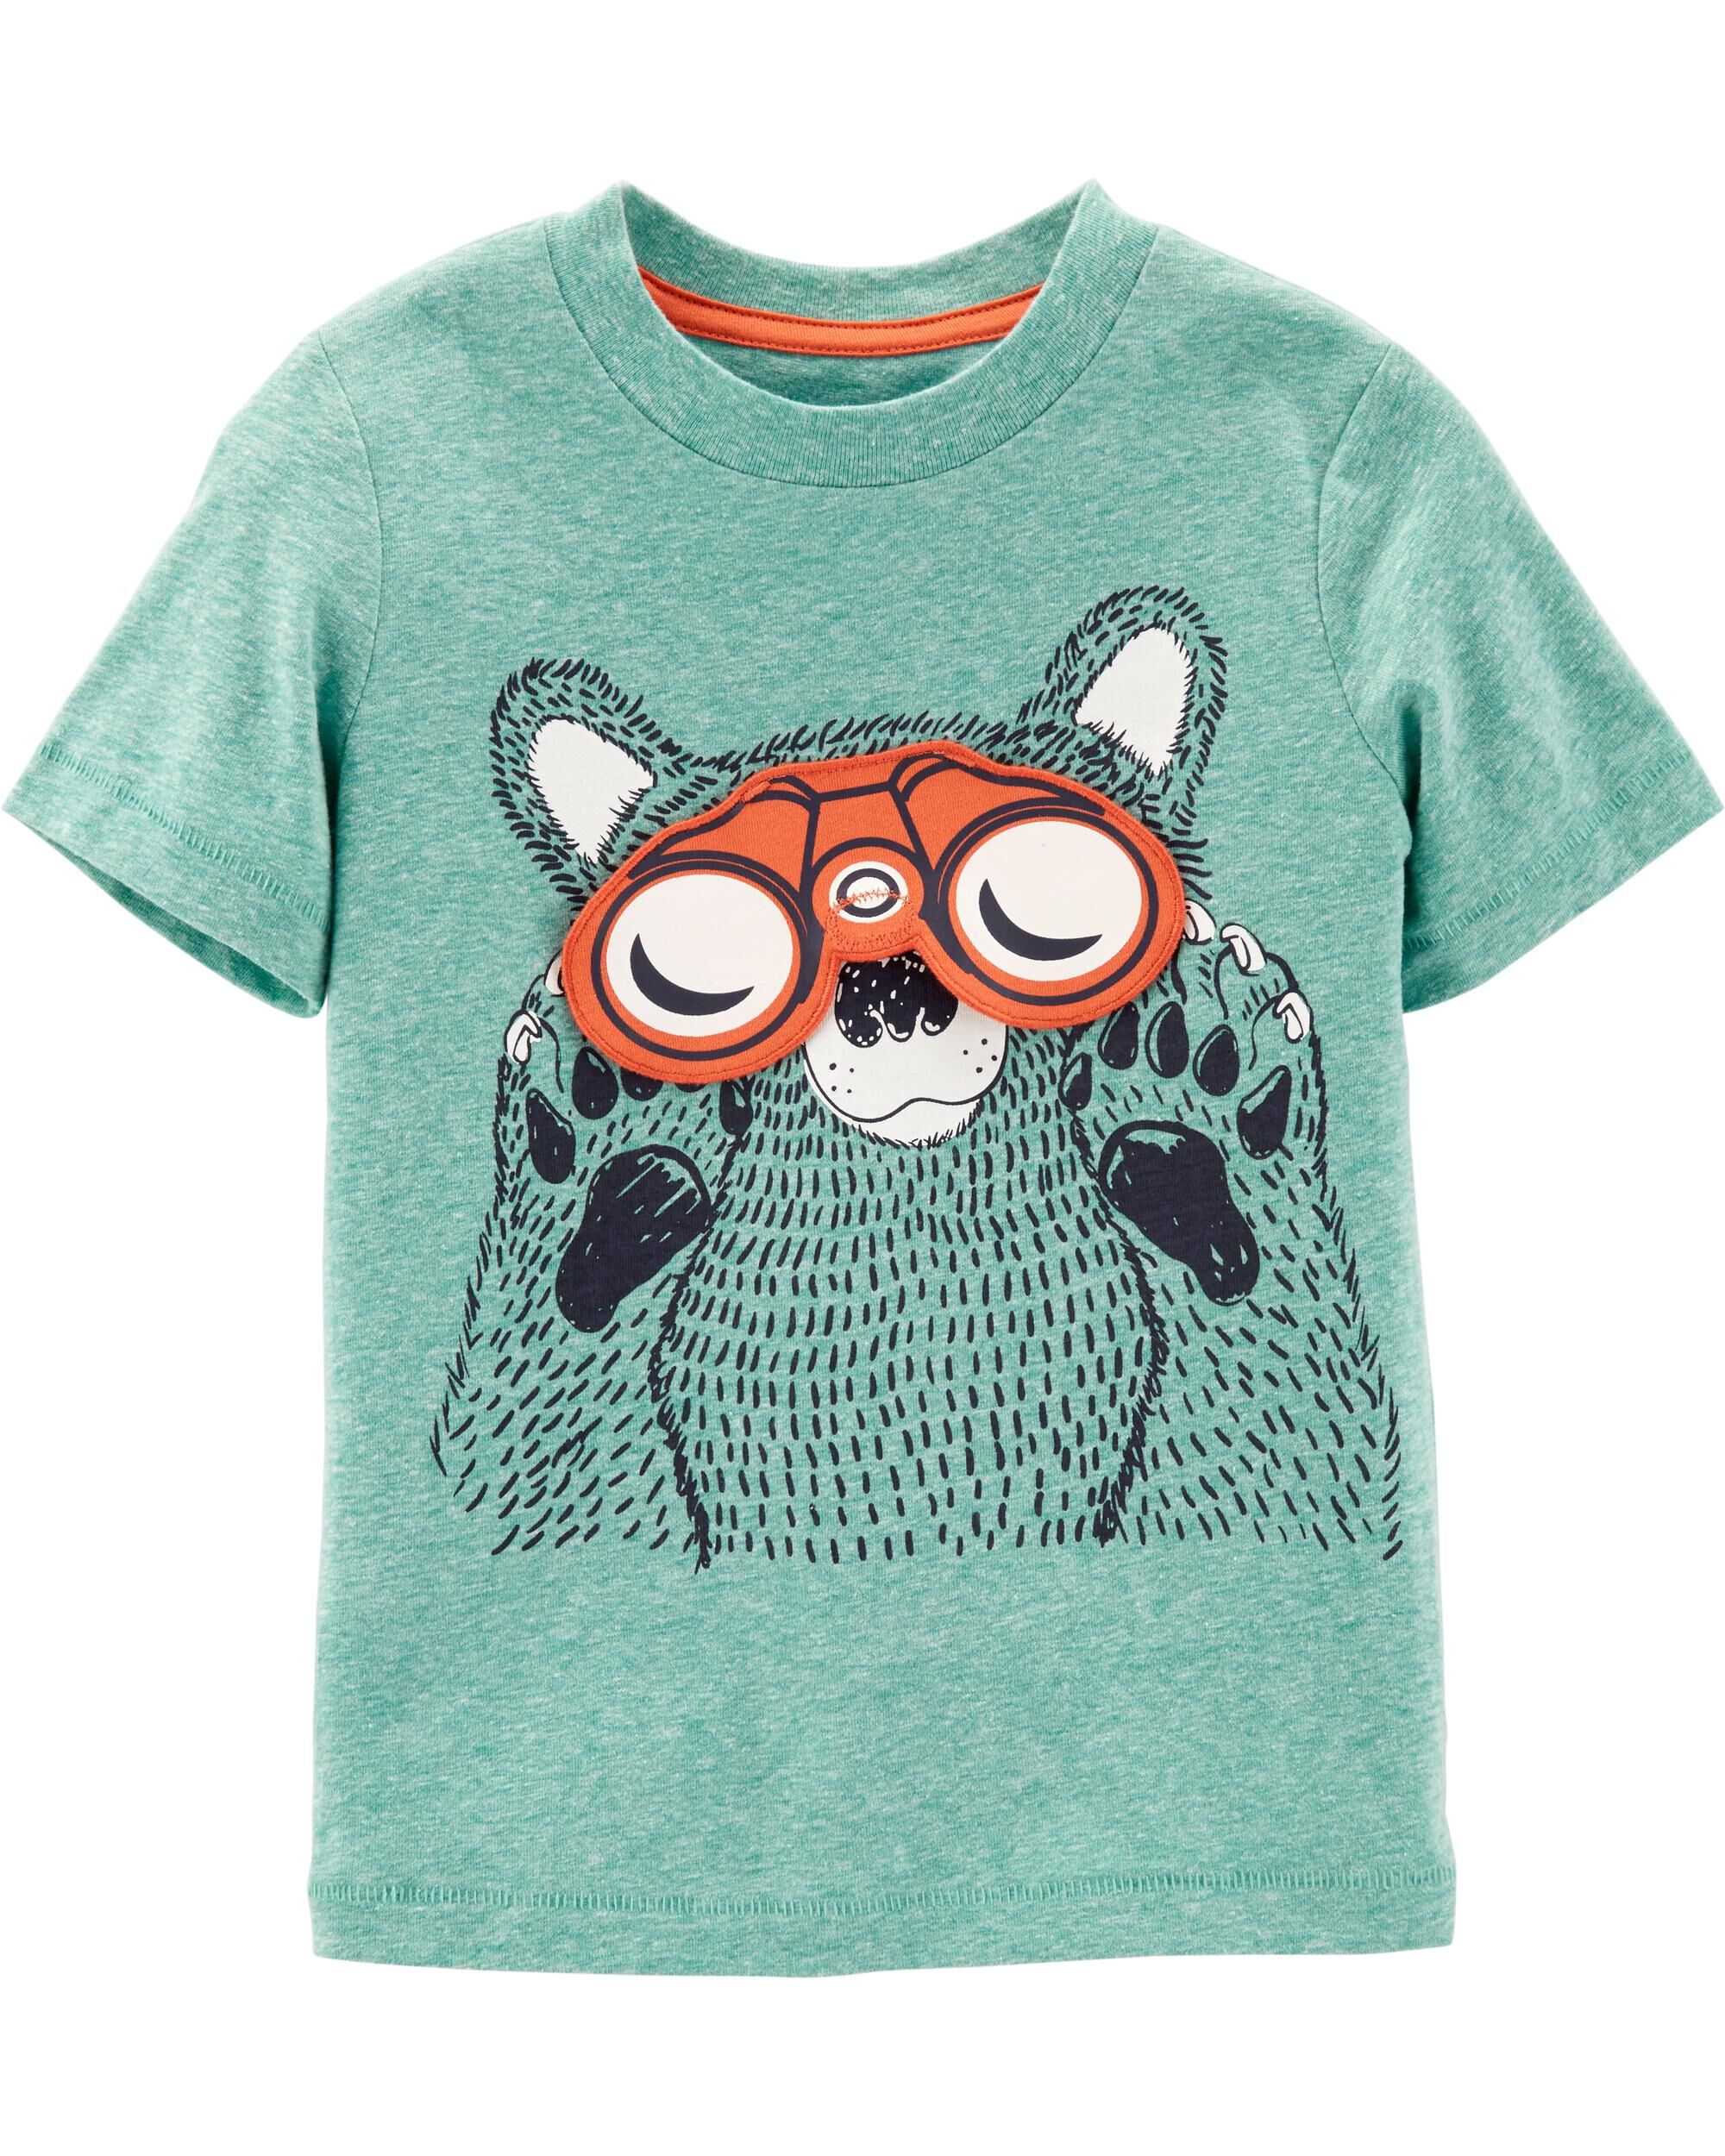 Cute Tree and Zen Circle Onesies U99oi-9 Long Sleeve Cotton Rompers for Baby Girls Boys